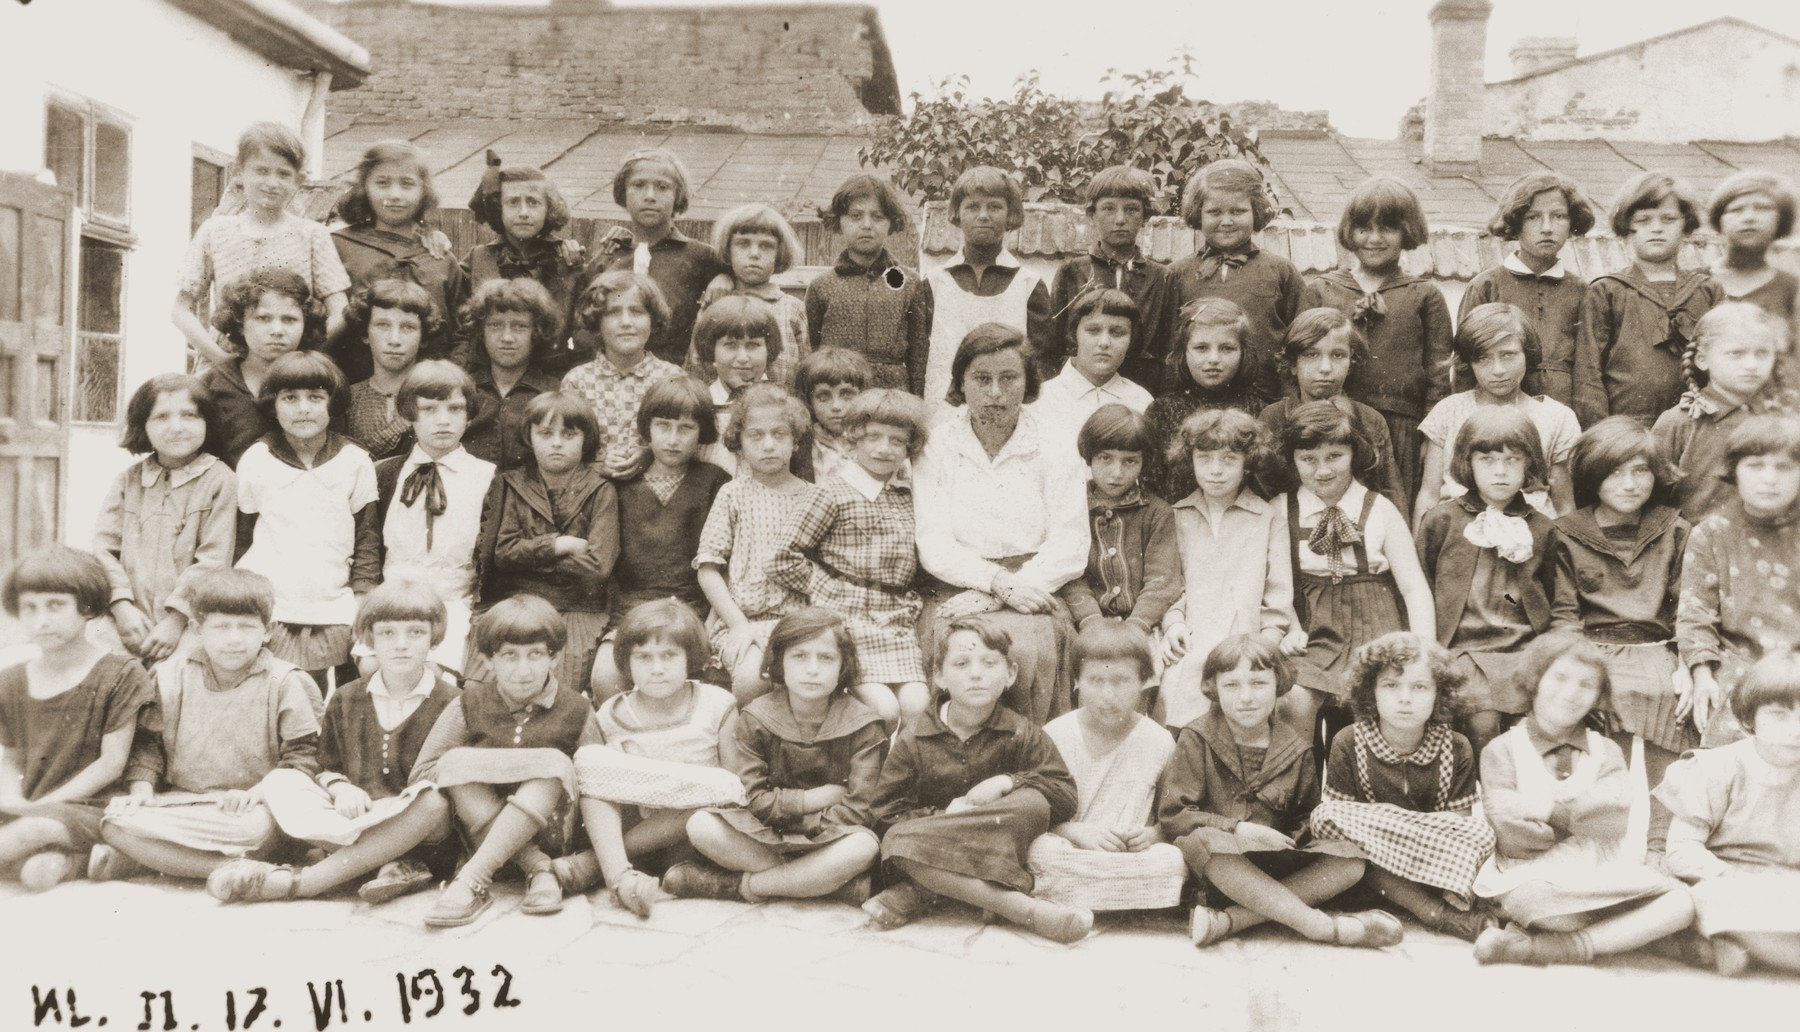 Group portrait of second grade girls at the Zydowska Szkola Powszechna, a private Jewish elementary school in Brody.  Pictured from left to right are: bottom row: Rozia Bojeches, Feuerstein, Achtentuch, Friedman and unknown;  second row: Liberman, Palace, unknown, unknown, Marta Barach, unknown, unknown, Ida Tabask (teacher), Mania Kanczuker, unknown;  third row: Cyla Chari, Bruh, unknown, Sabina Braun, Holzeger, Pepa Frenkel, Mania Federman, Chana Braun, Demb;  top row: Lerner, Esther Braun, unknown, Fruschlinger, Mania Katz, Altman, Lerner, Rabinowitz, unknown, Mania Baras and unknown.